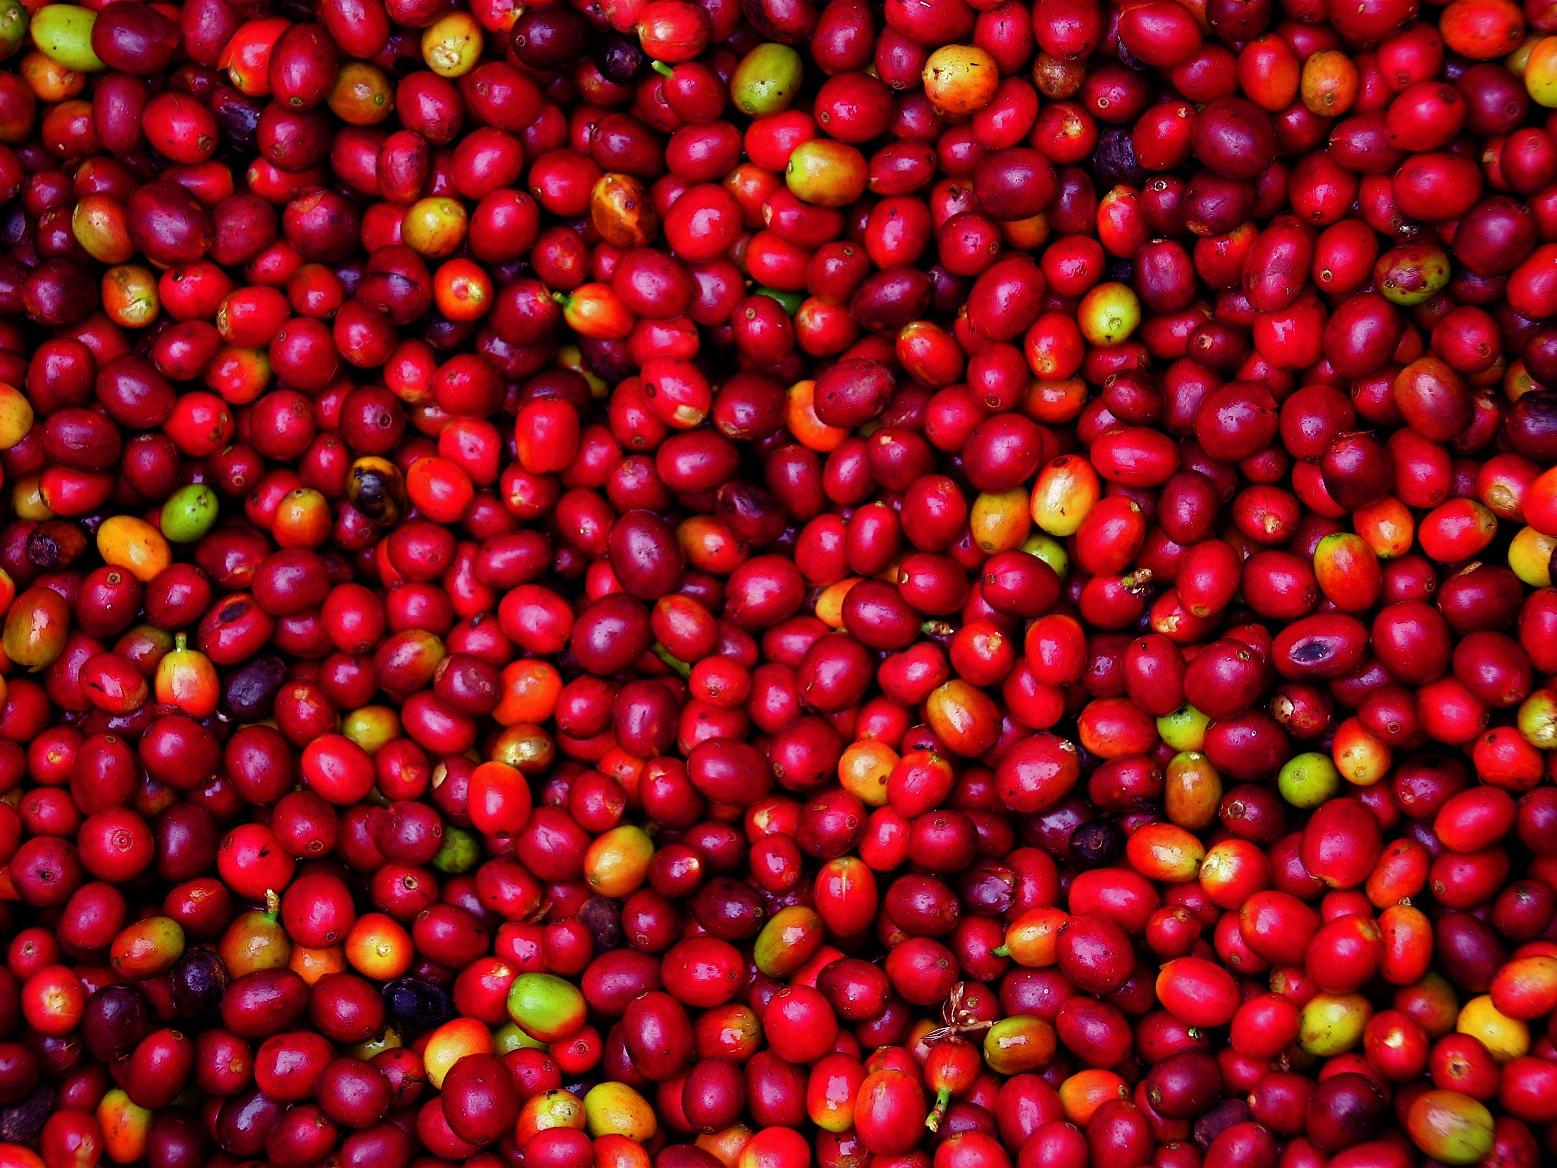 coffee cherries © David Dudenhoefer, Rainforest Alliance